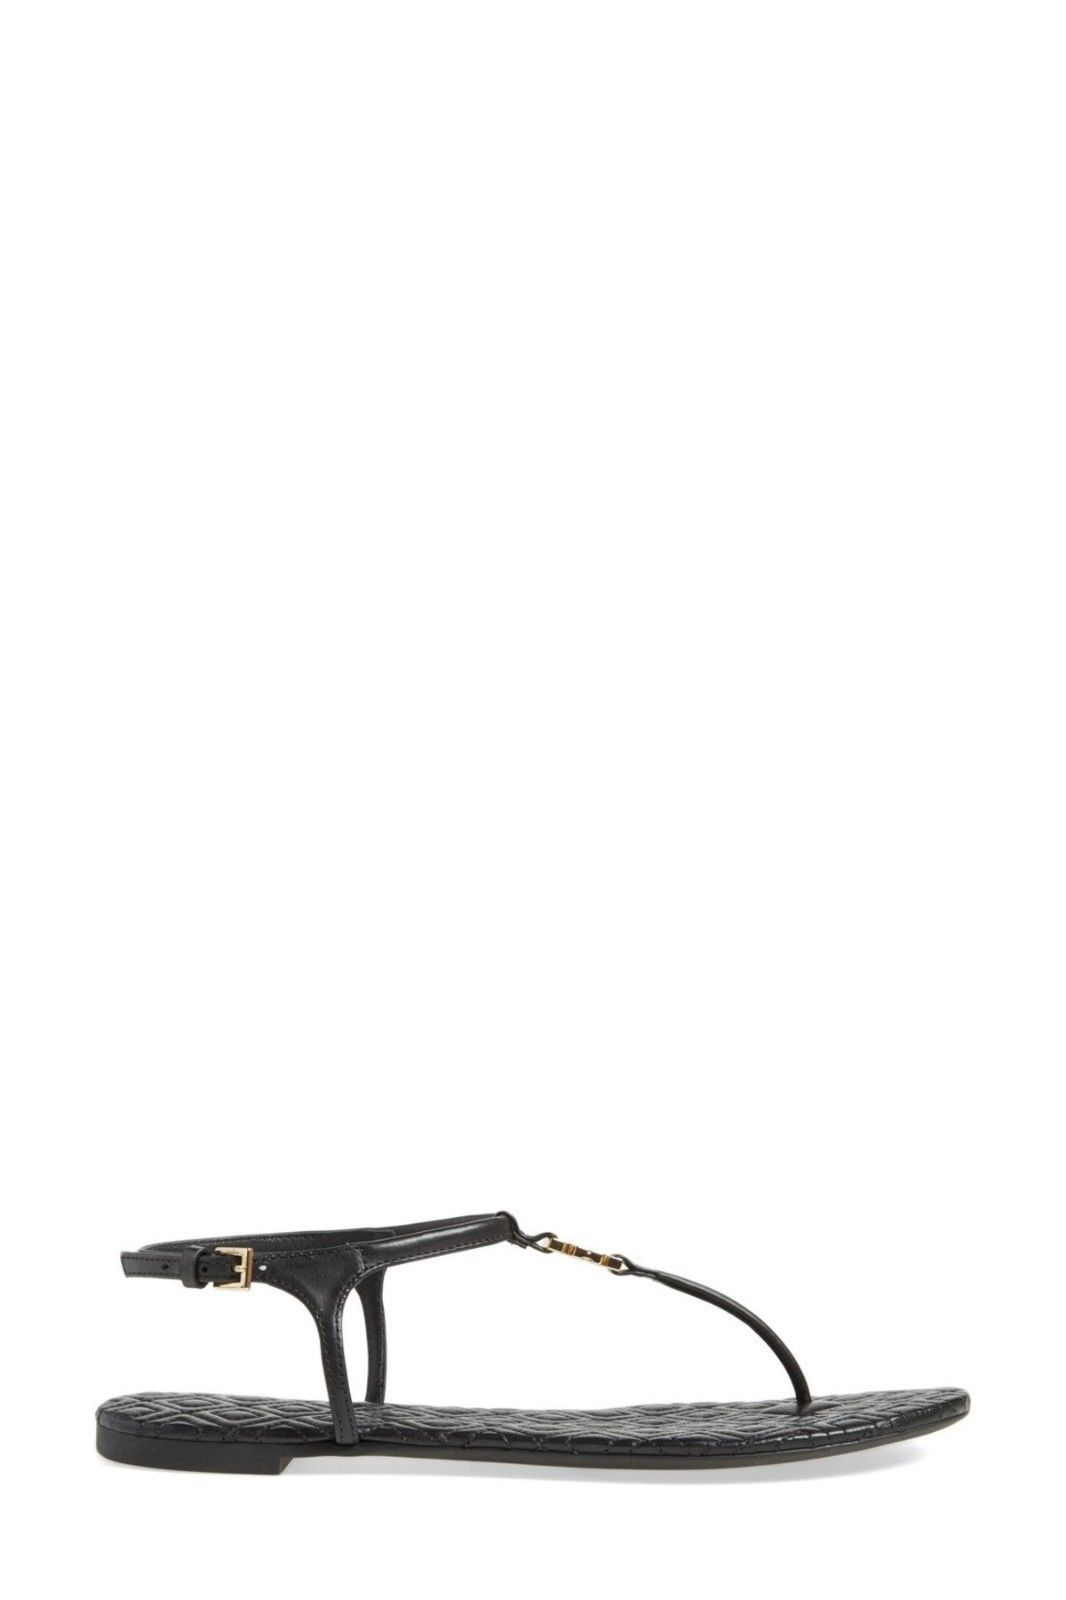 Tory Burch Marion Quilted Sandal - Black